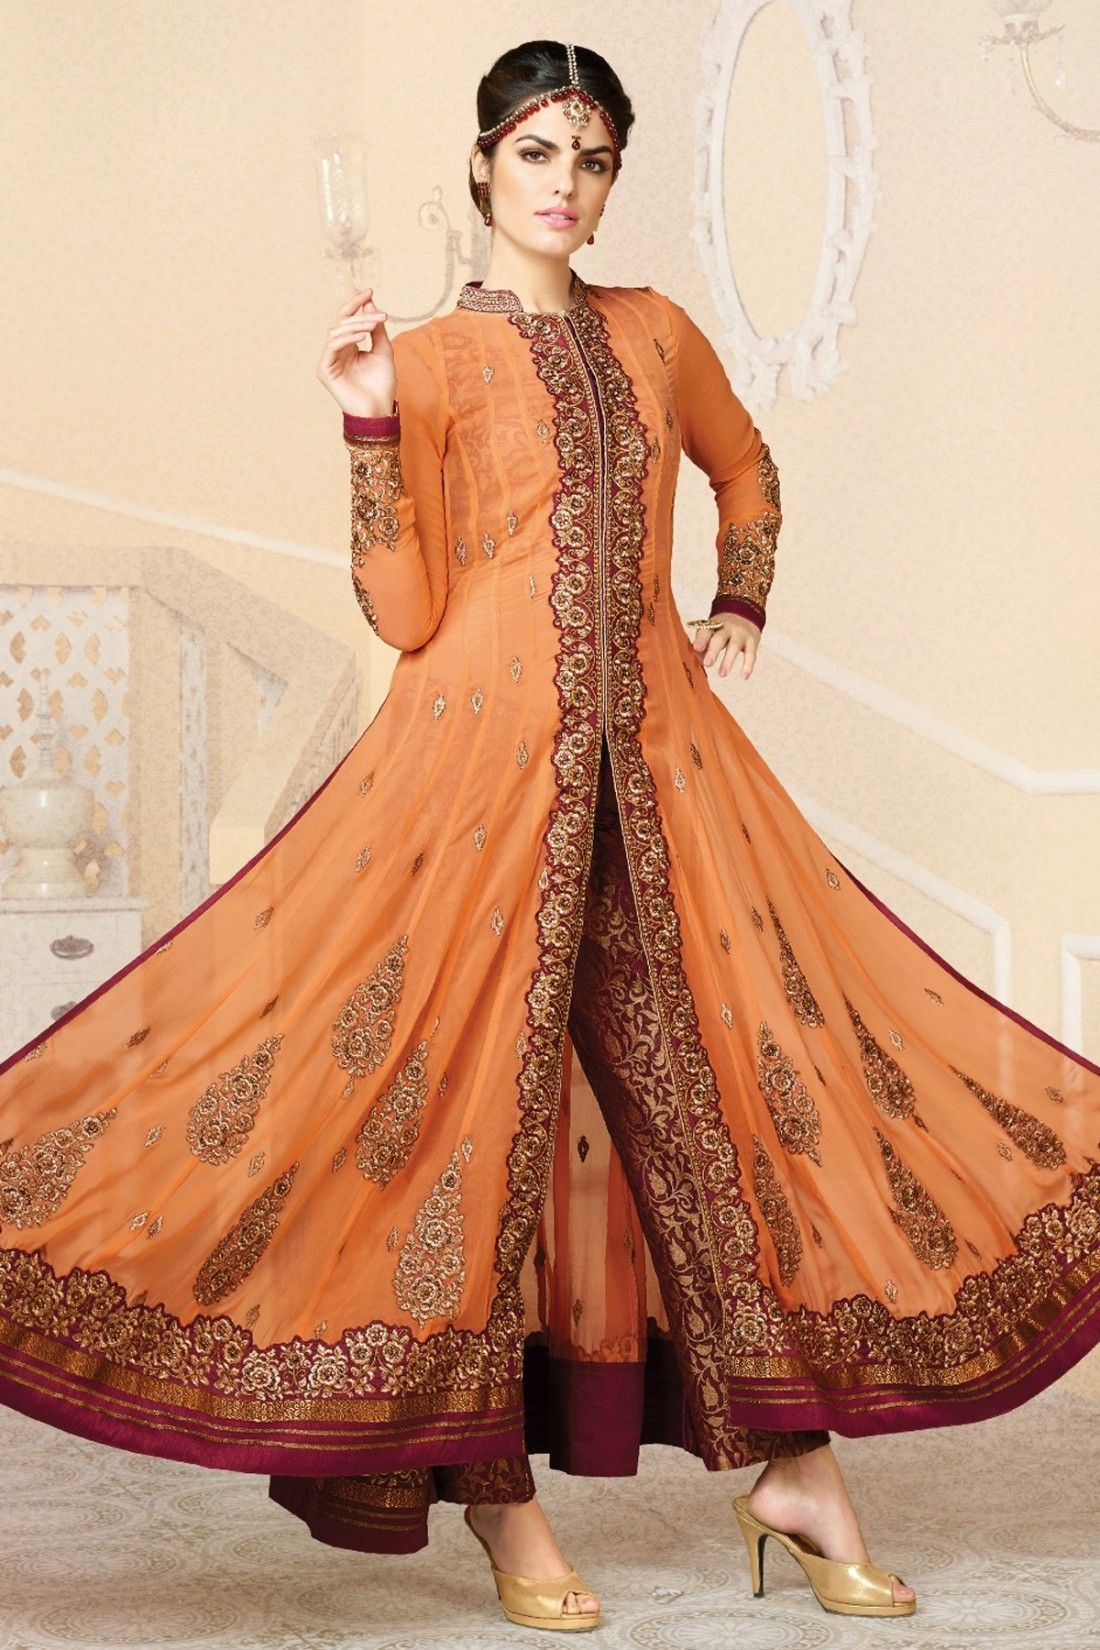 5a2d4b105ce Orange and Dark Red Faux Georgette Anarkali Suit Online  Shopping-Z3036PPRJ1449-81